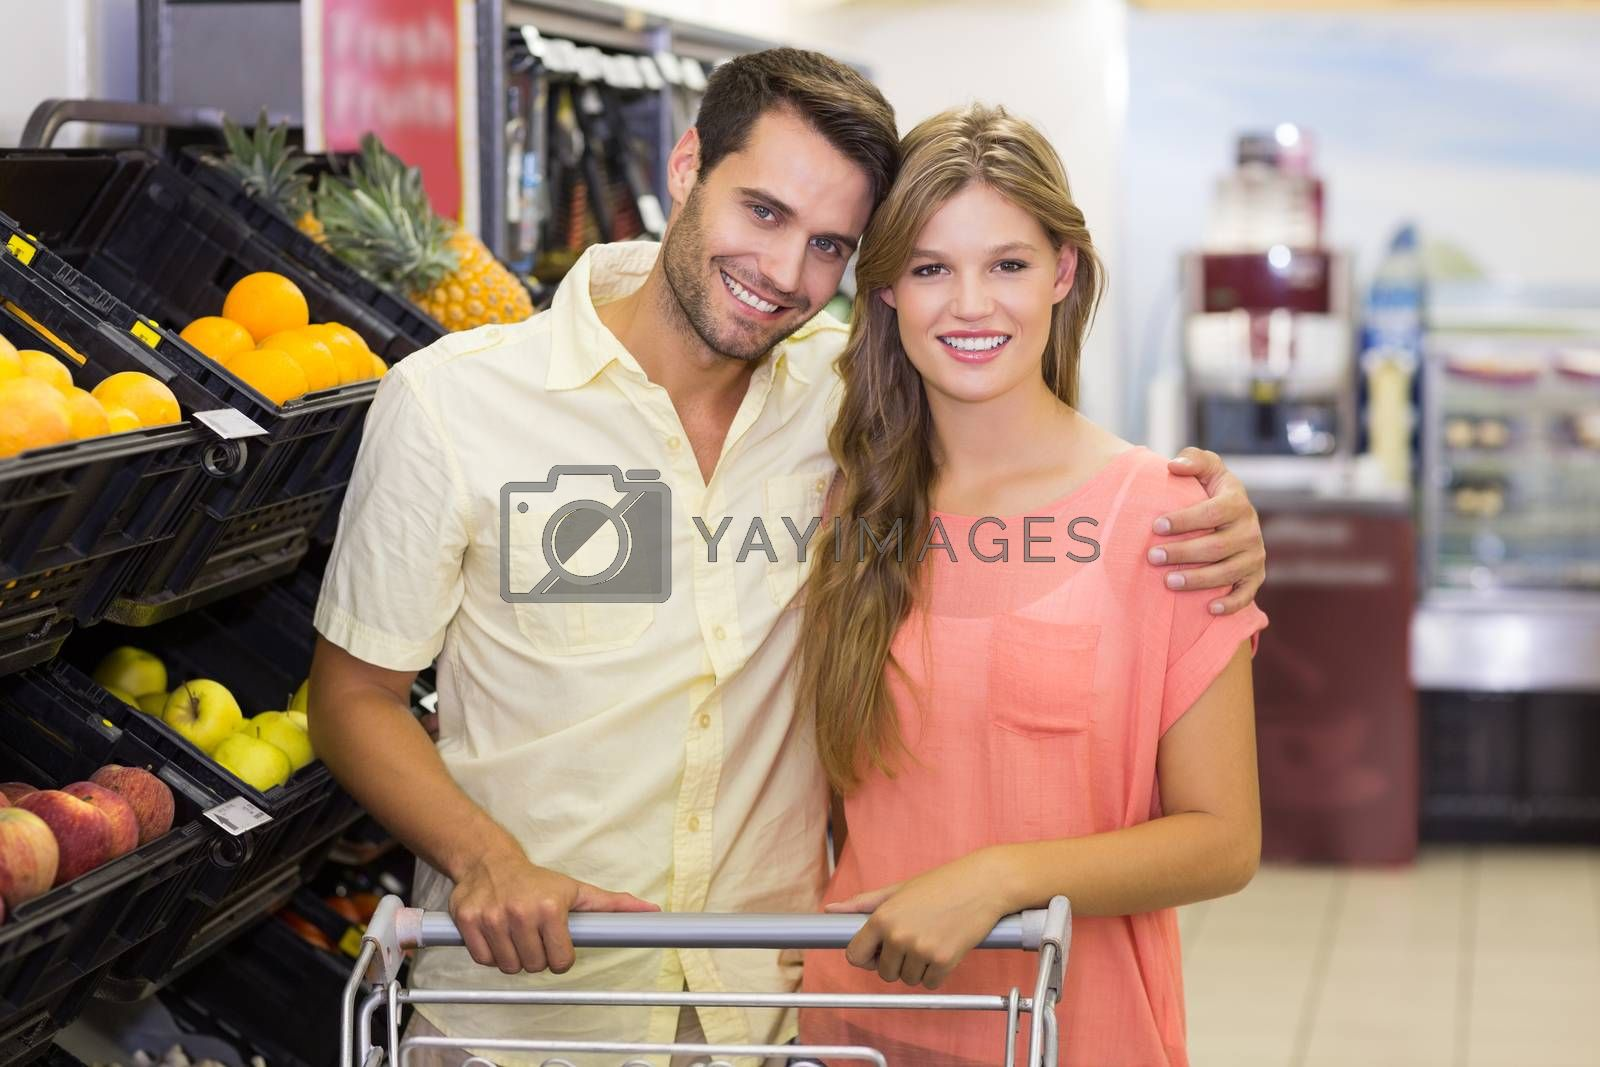 Royalty free image of Portrait of smiling bright couple buying food products by Wavebreakmedia